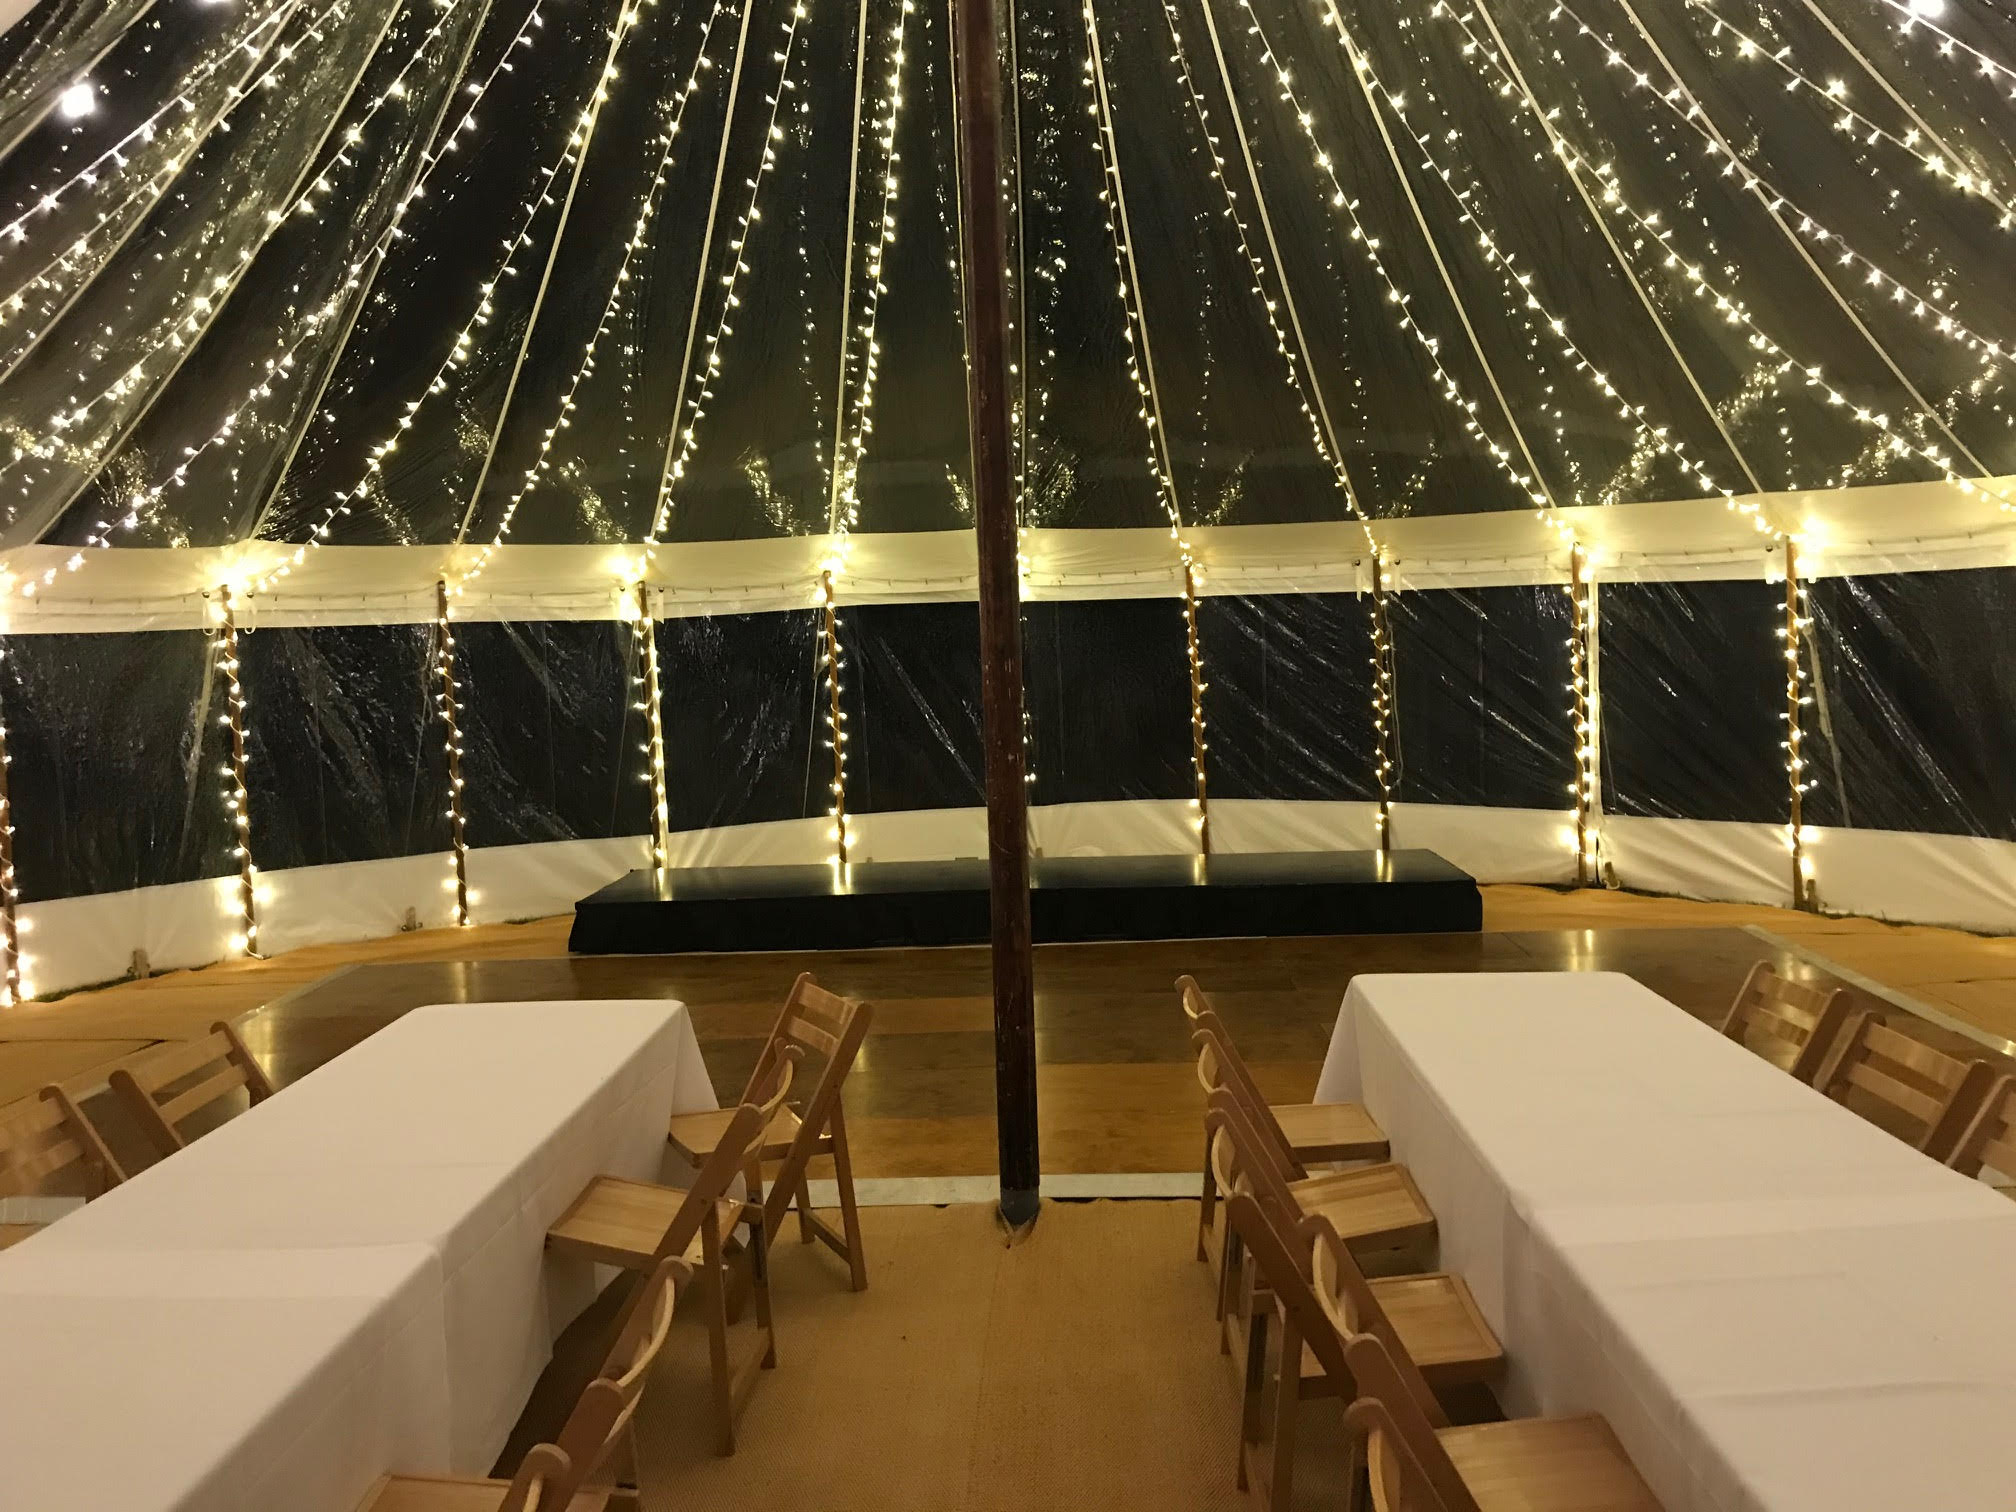 Interior shot of sail cloth marquee with festoon lighting